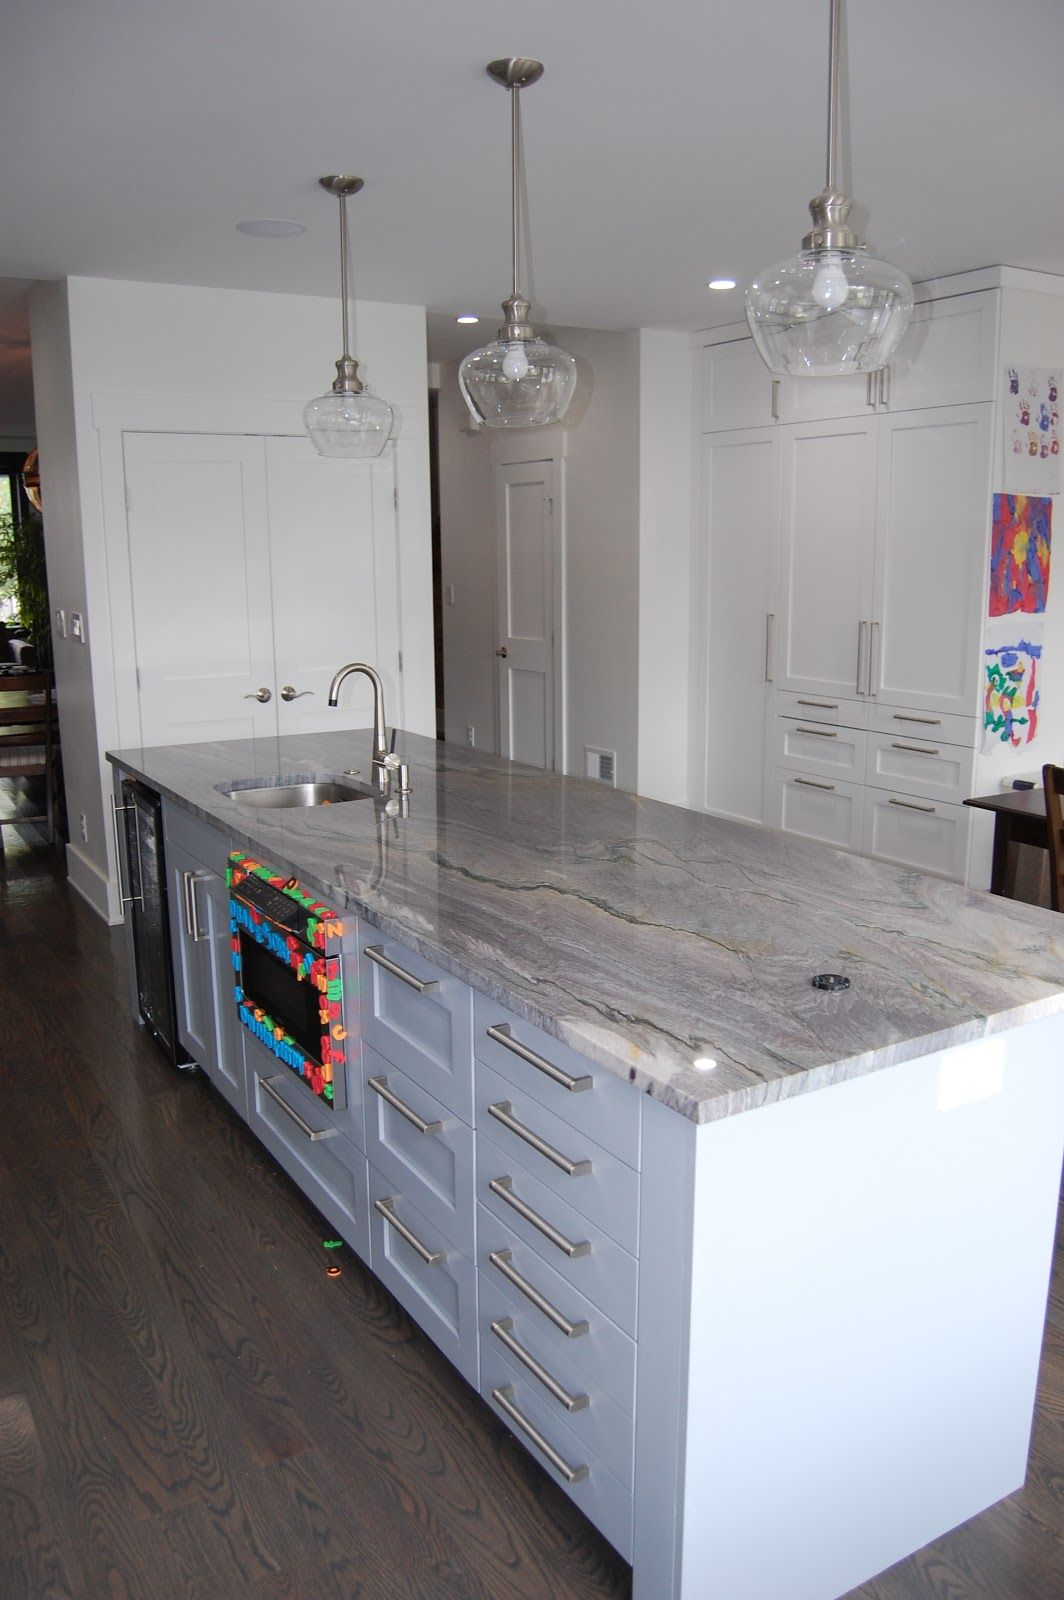 Ikea Stenstorp Kitchen Island Hack We Loved This Island But Needed A Larger Counter Space So We Ikea Kitchen Island Stenstorp Kitchen Island Apartment Kitchen